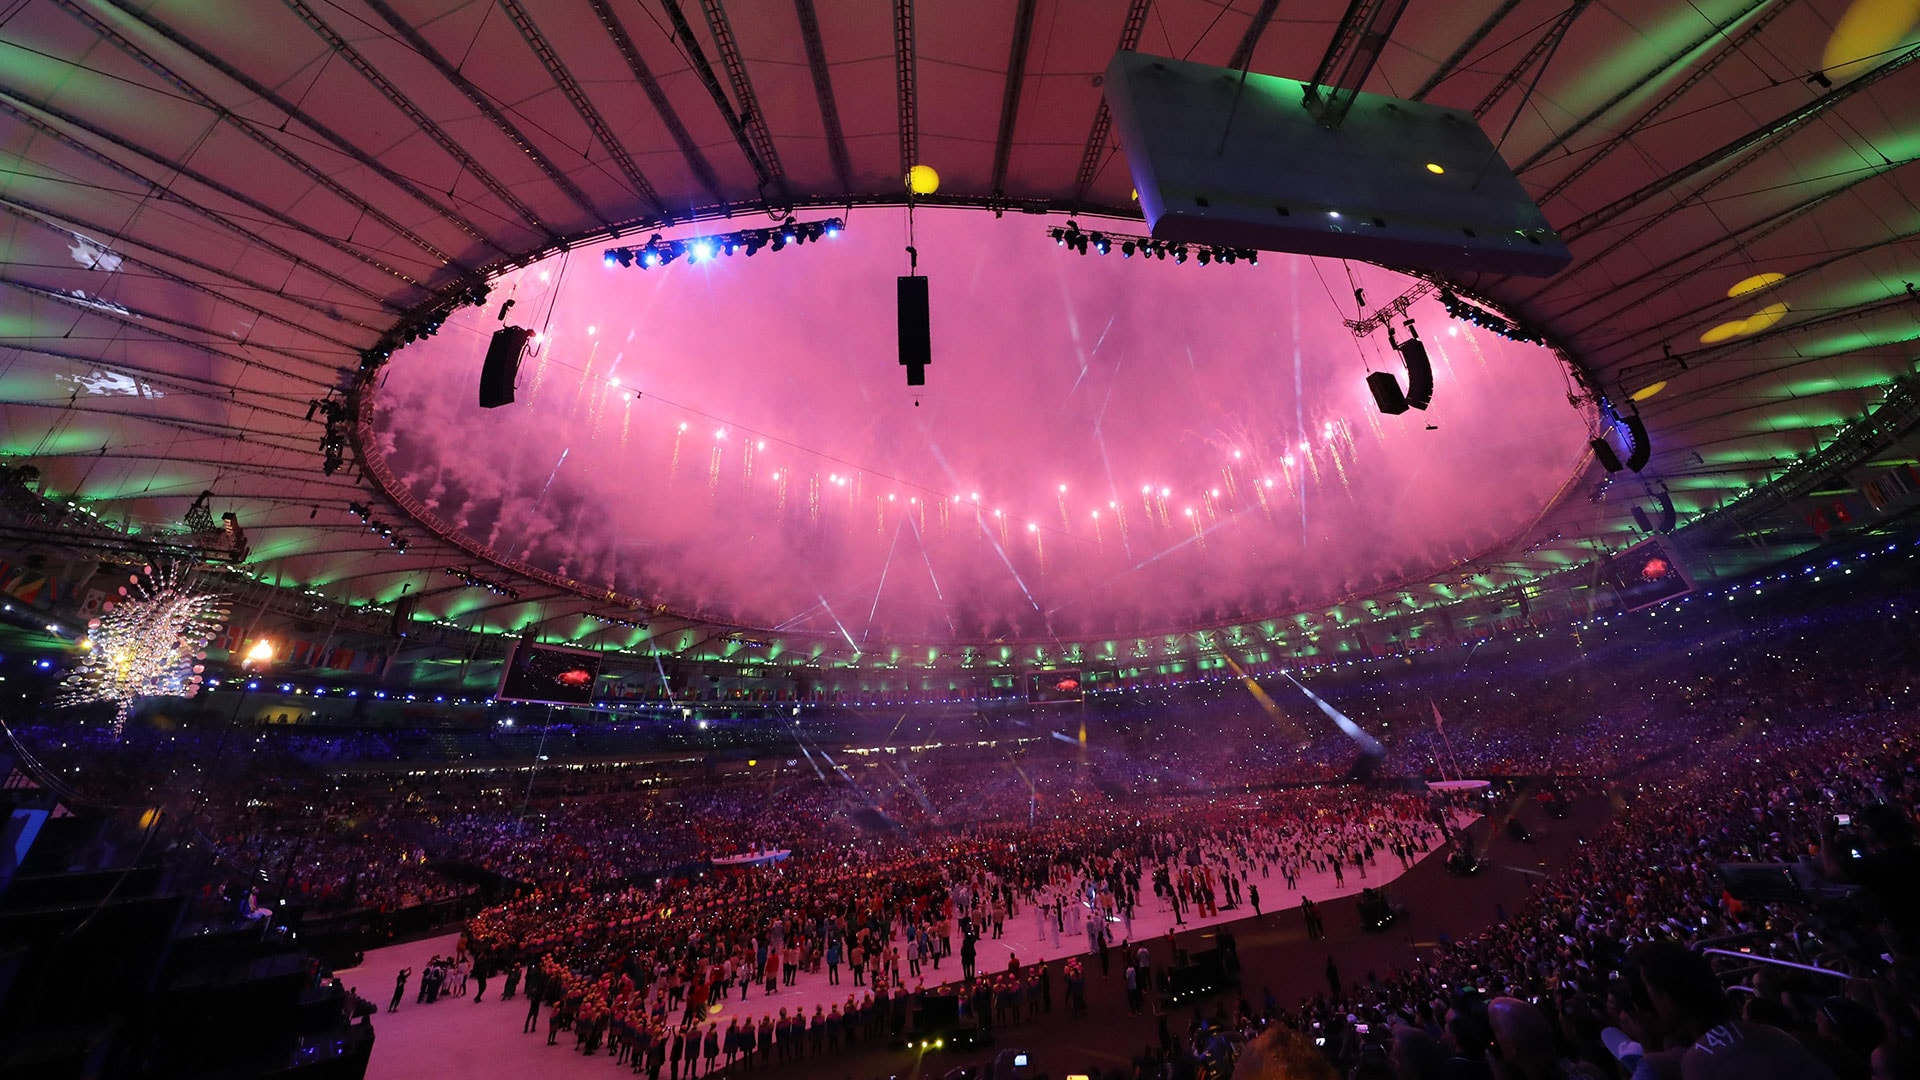 Image for Podcast: Inside the spectacle of the Opening Ceremony